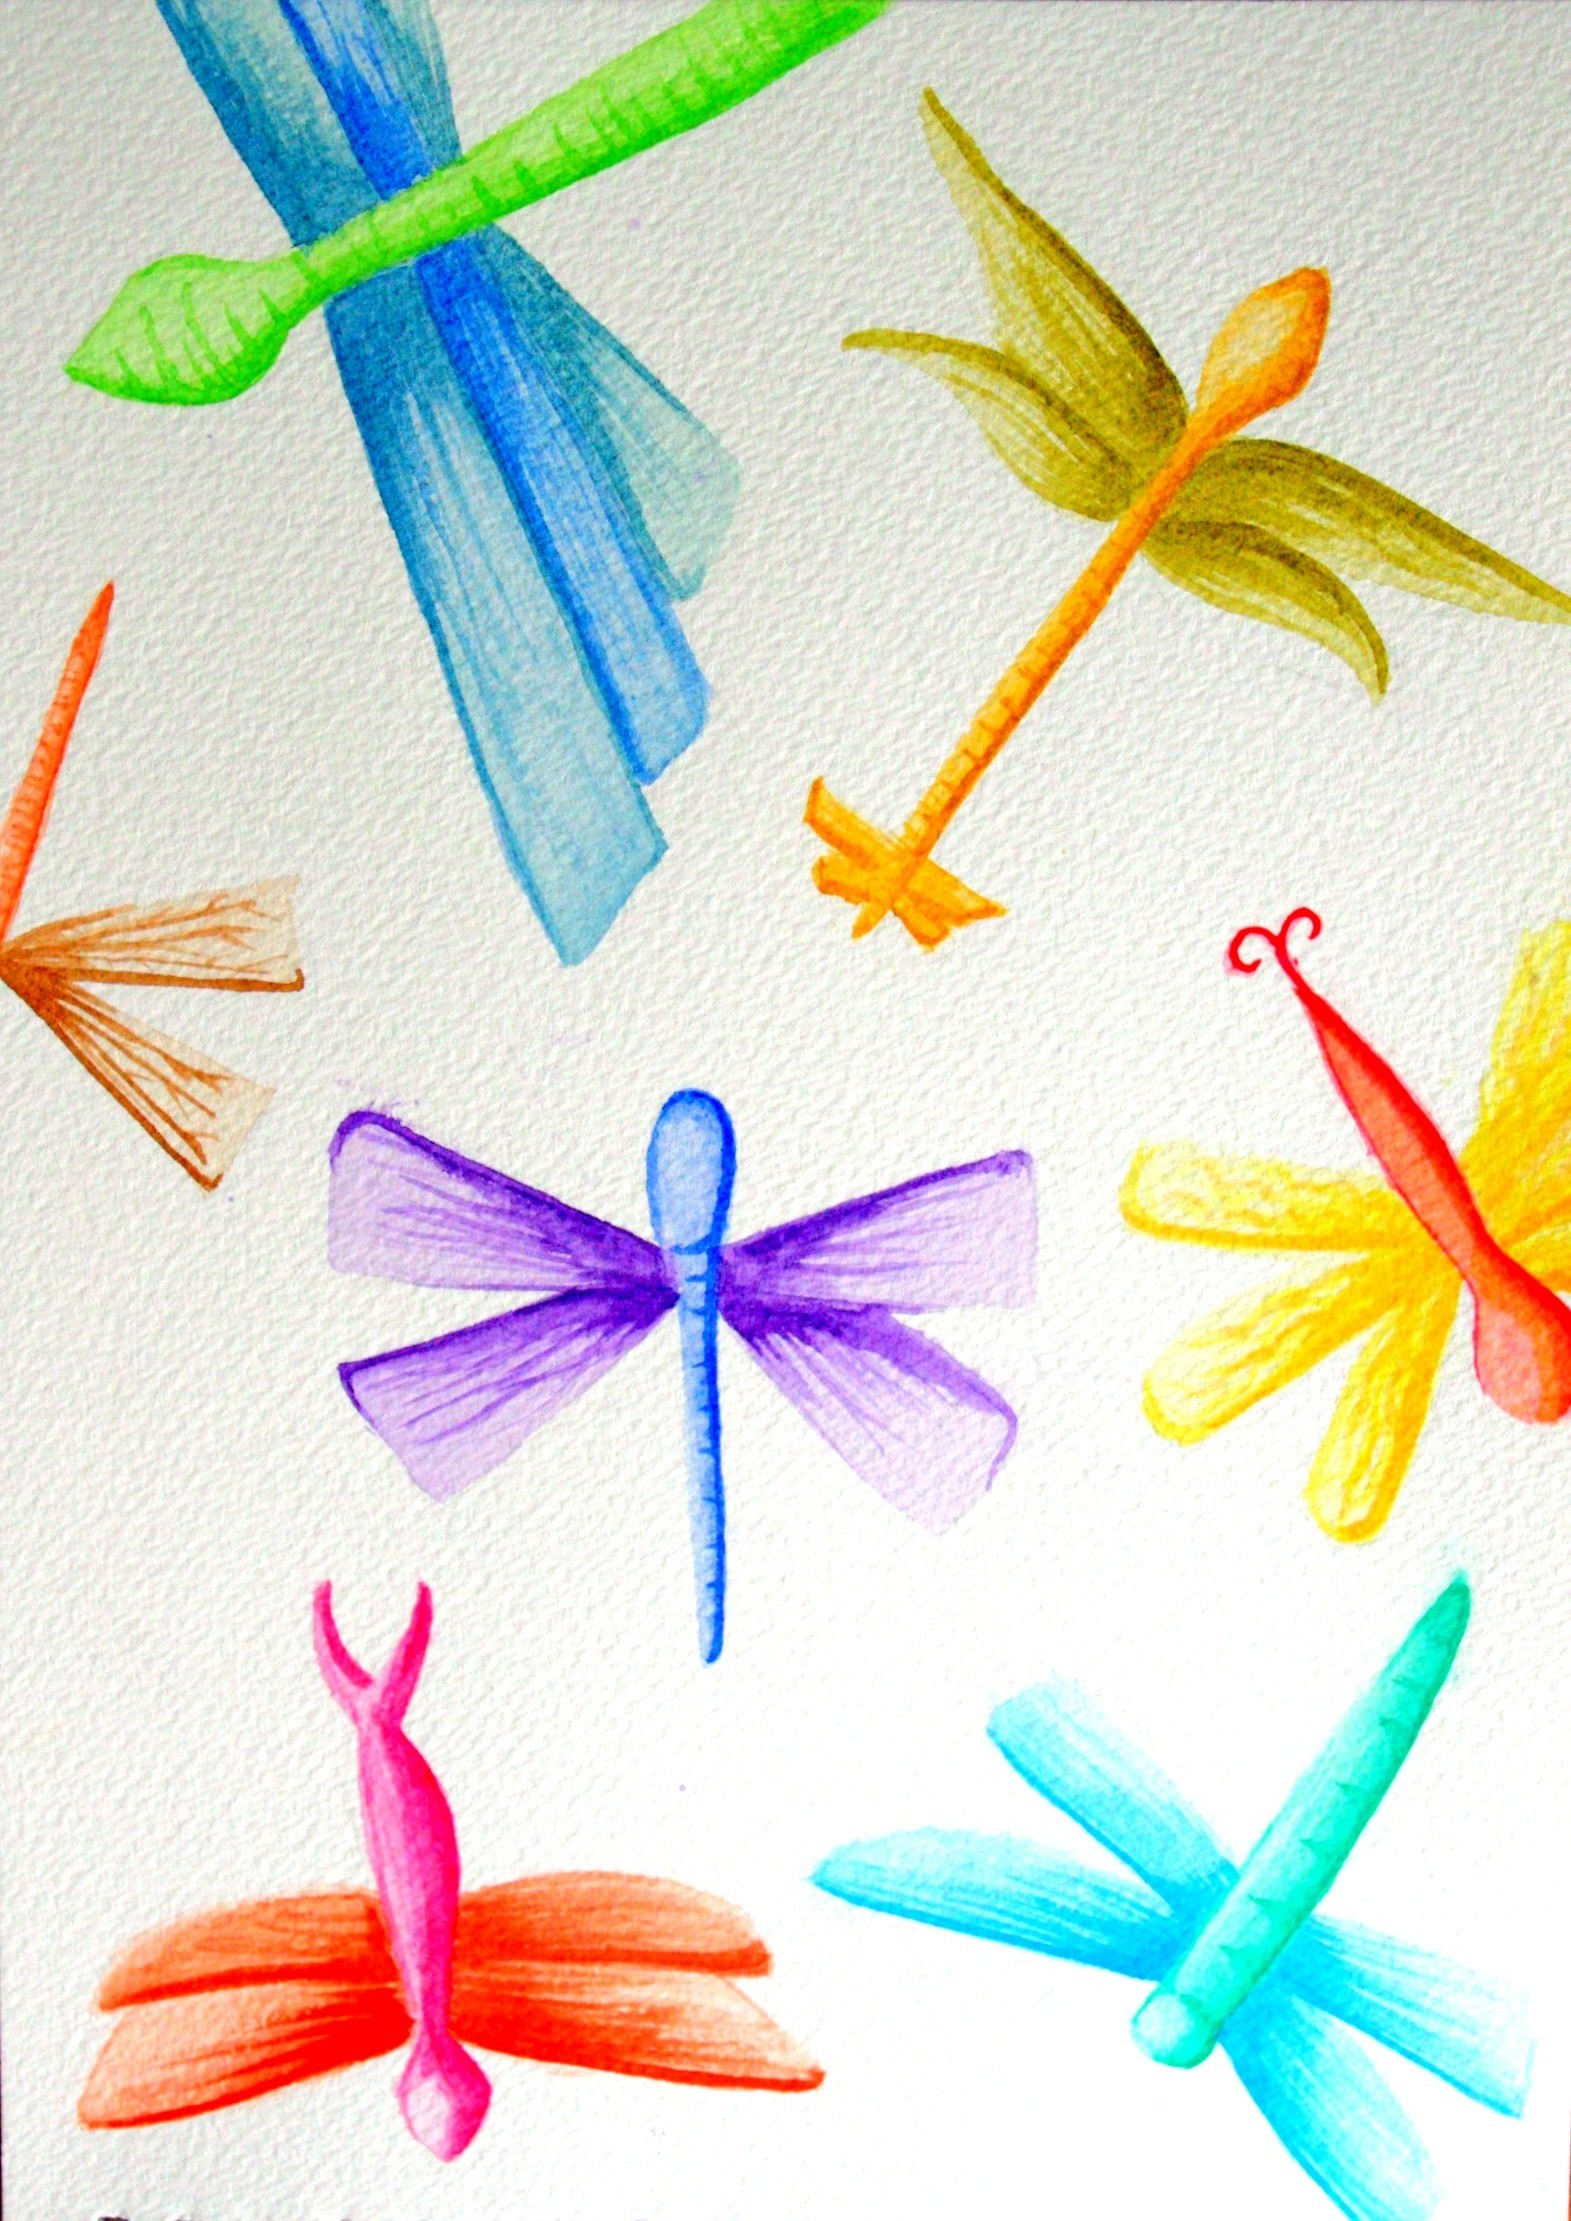 Dragonfly Wallpaper by oxlunaxo Dragonfly Wallpaper by oxlunaxo